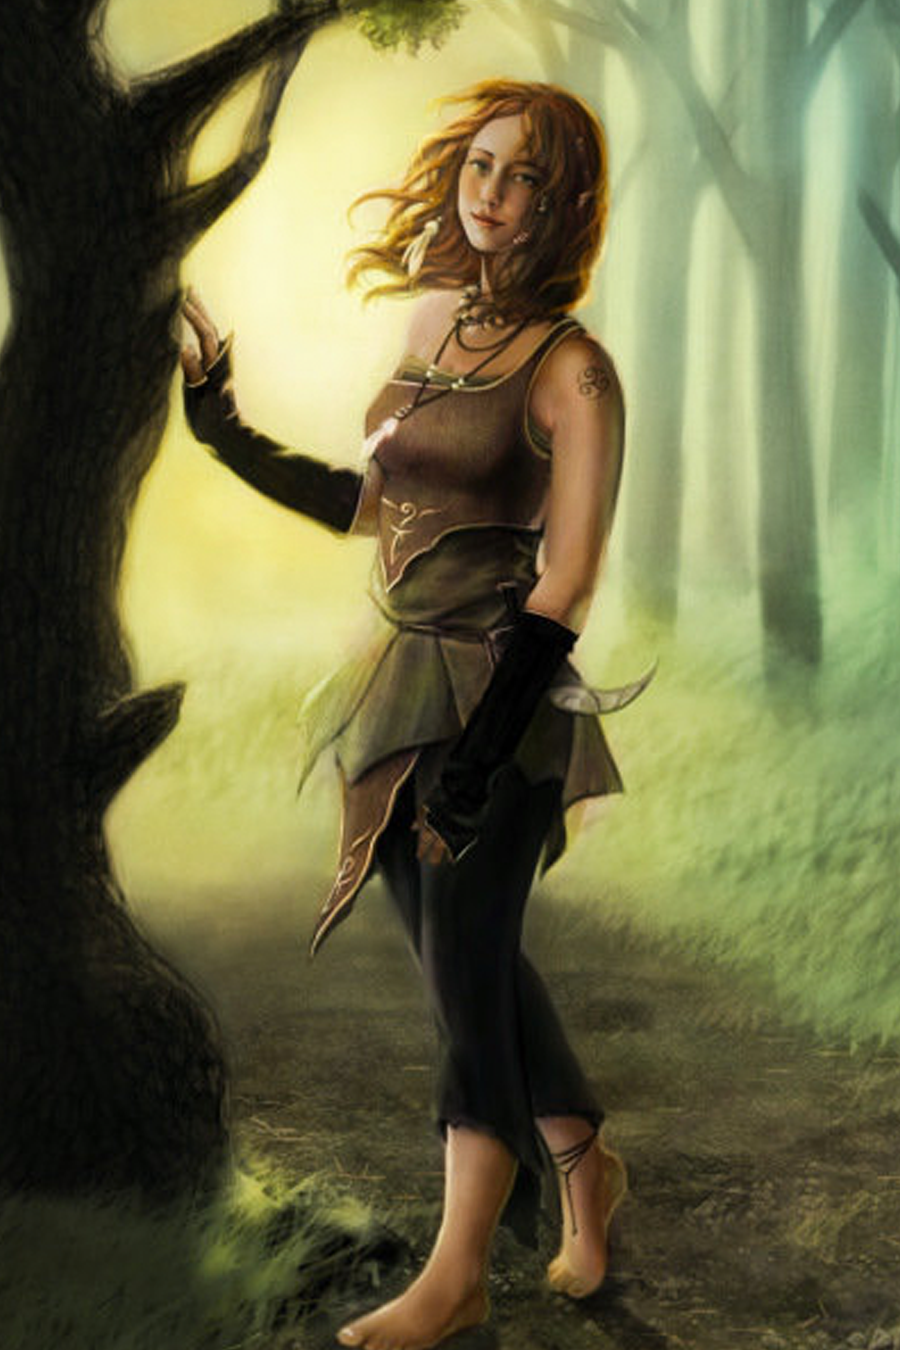 Druid girl hot nackt picture